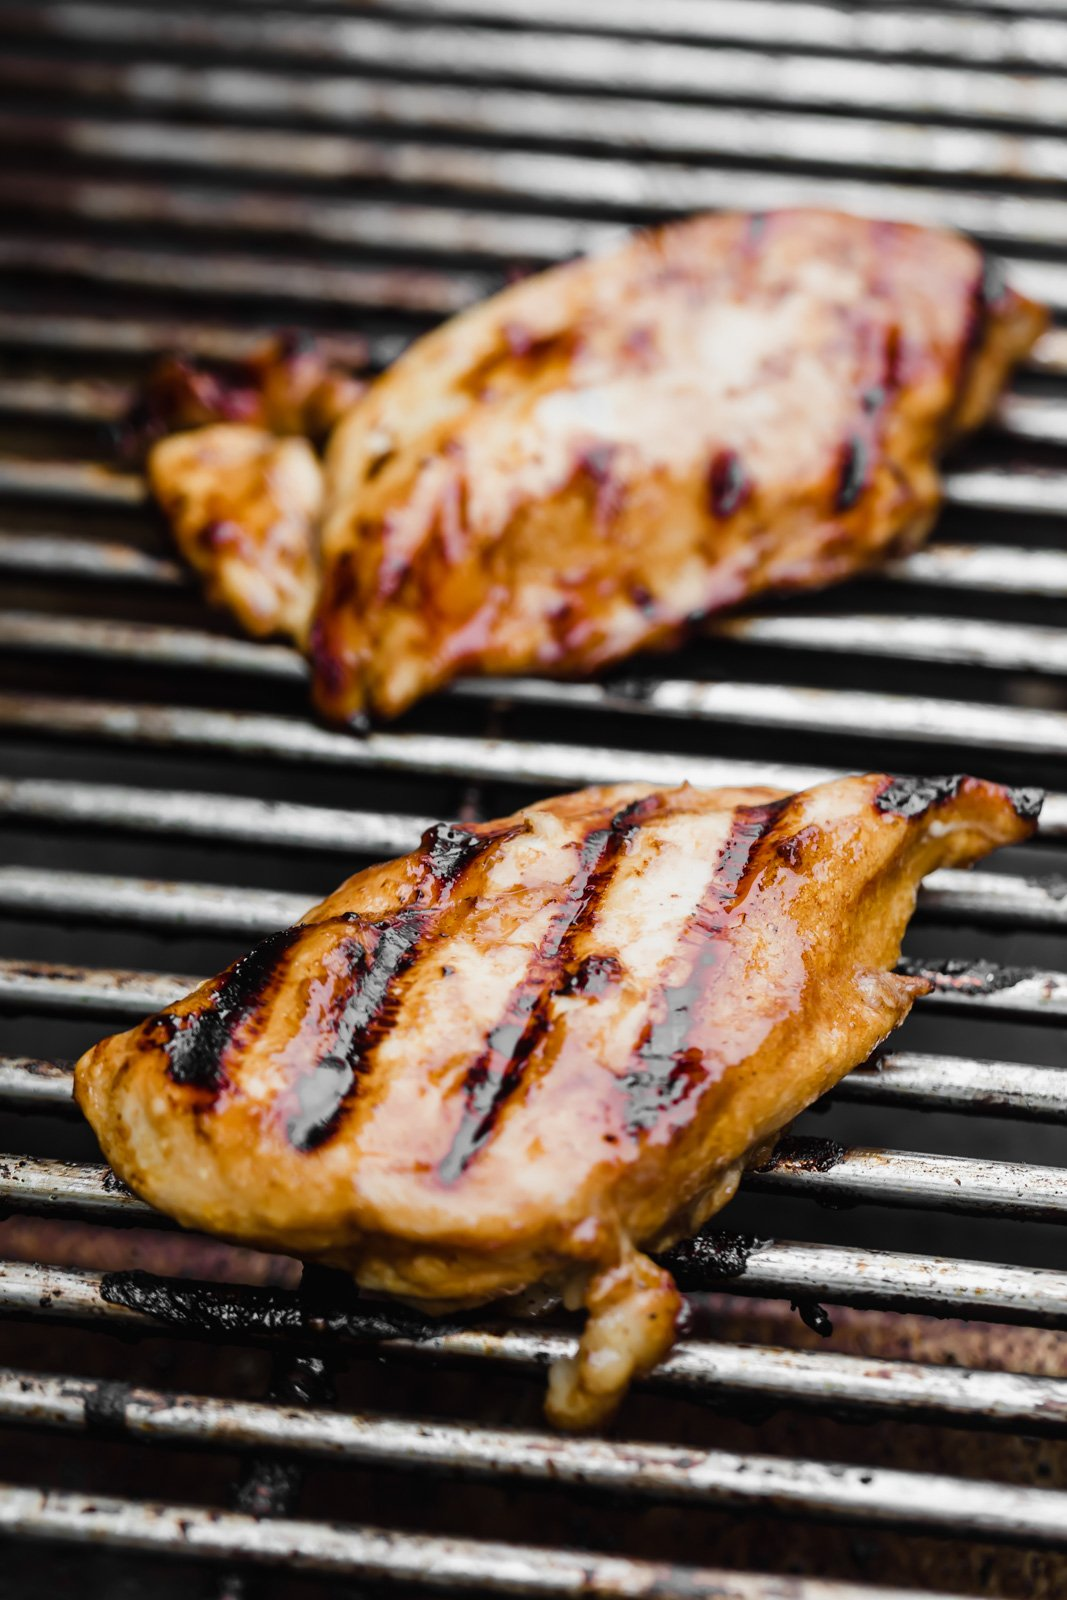 two chicken breasts on a grill